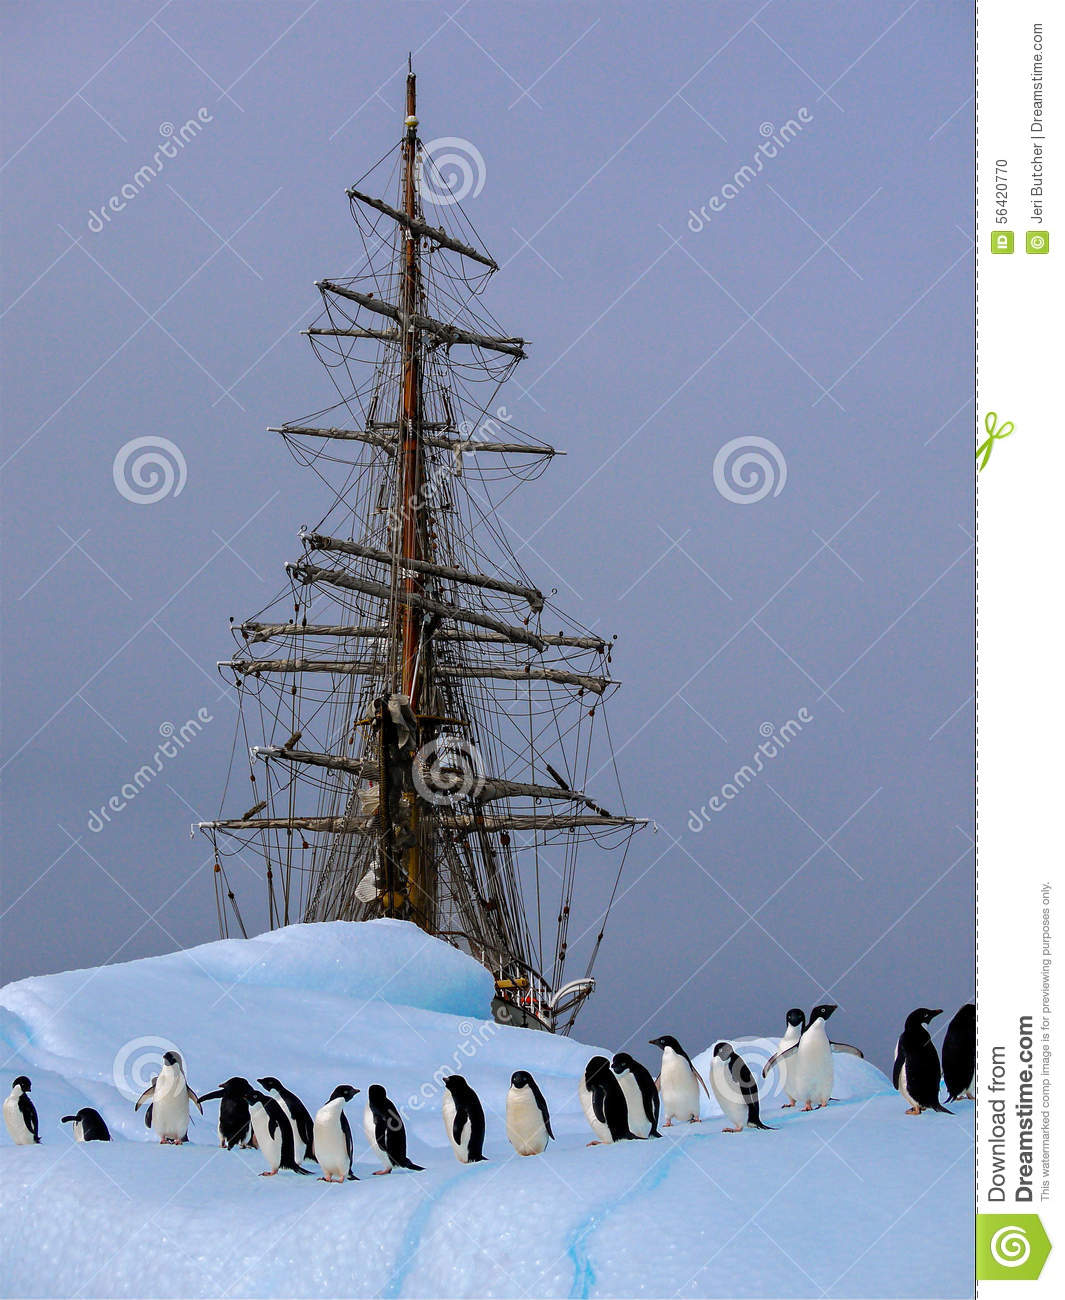 Old tallship or sailboat with adelie penguin